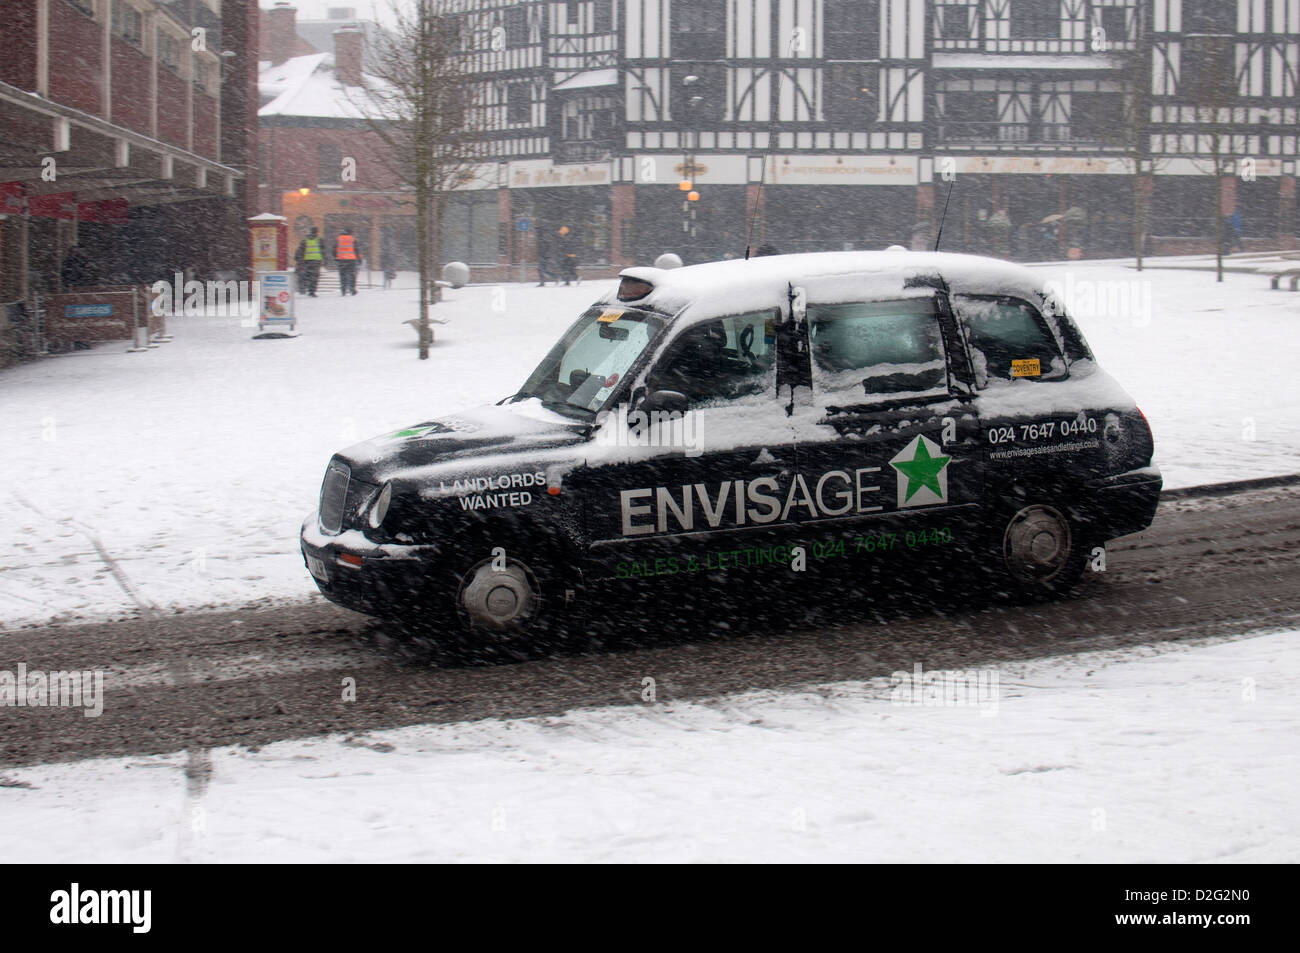 Taxi in snowy weather, Coventry city centre, UK - Stock Image